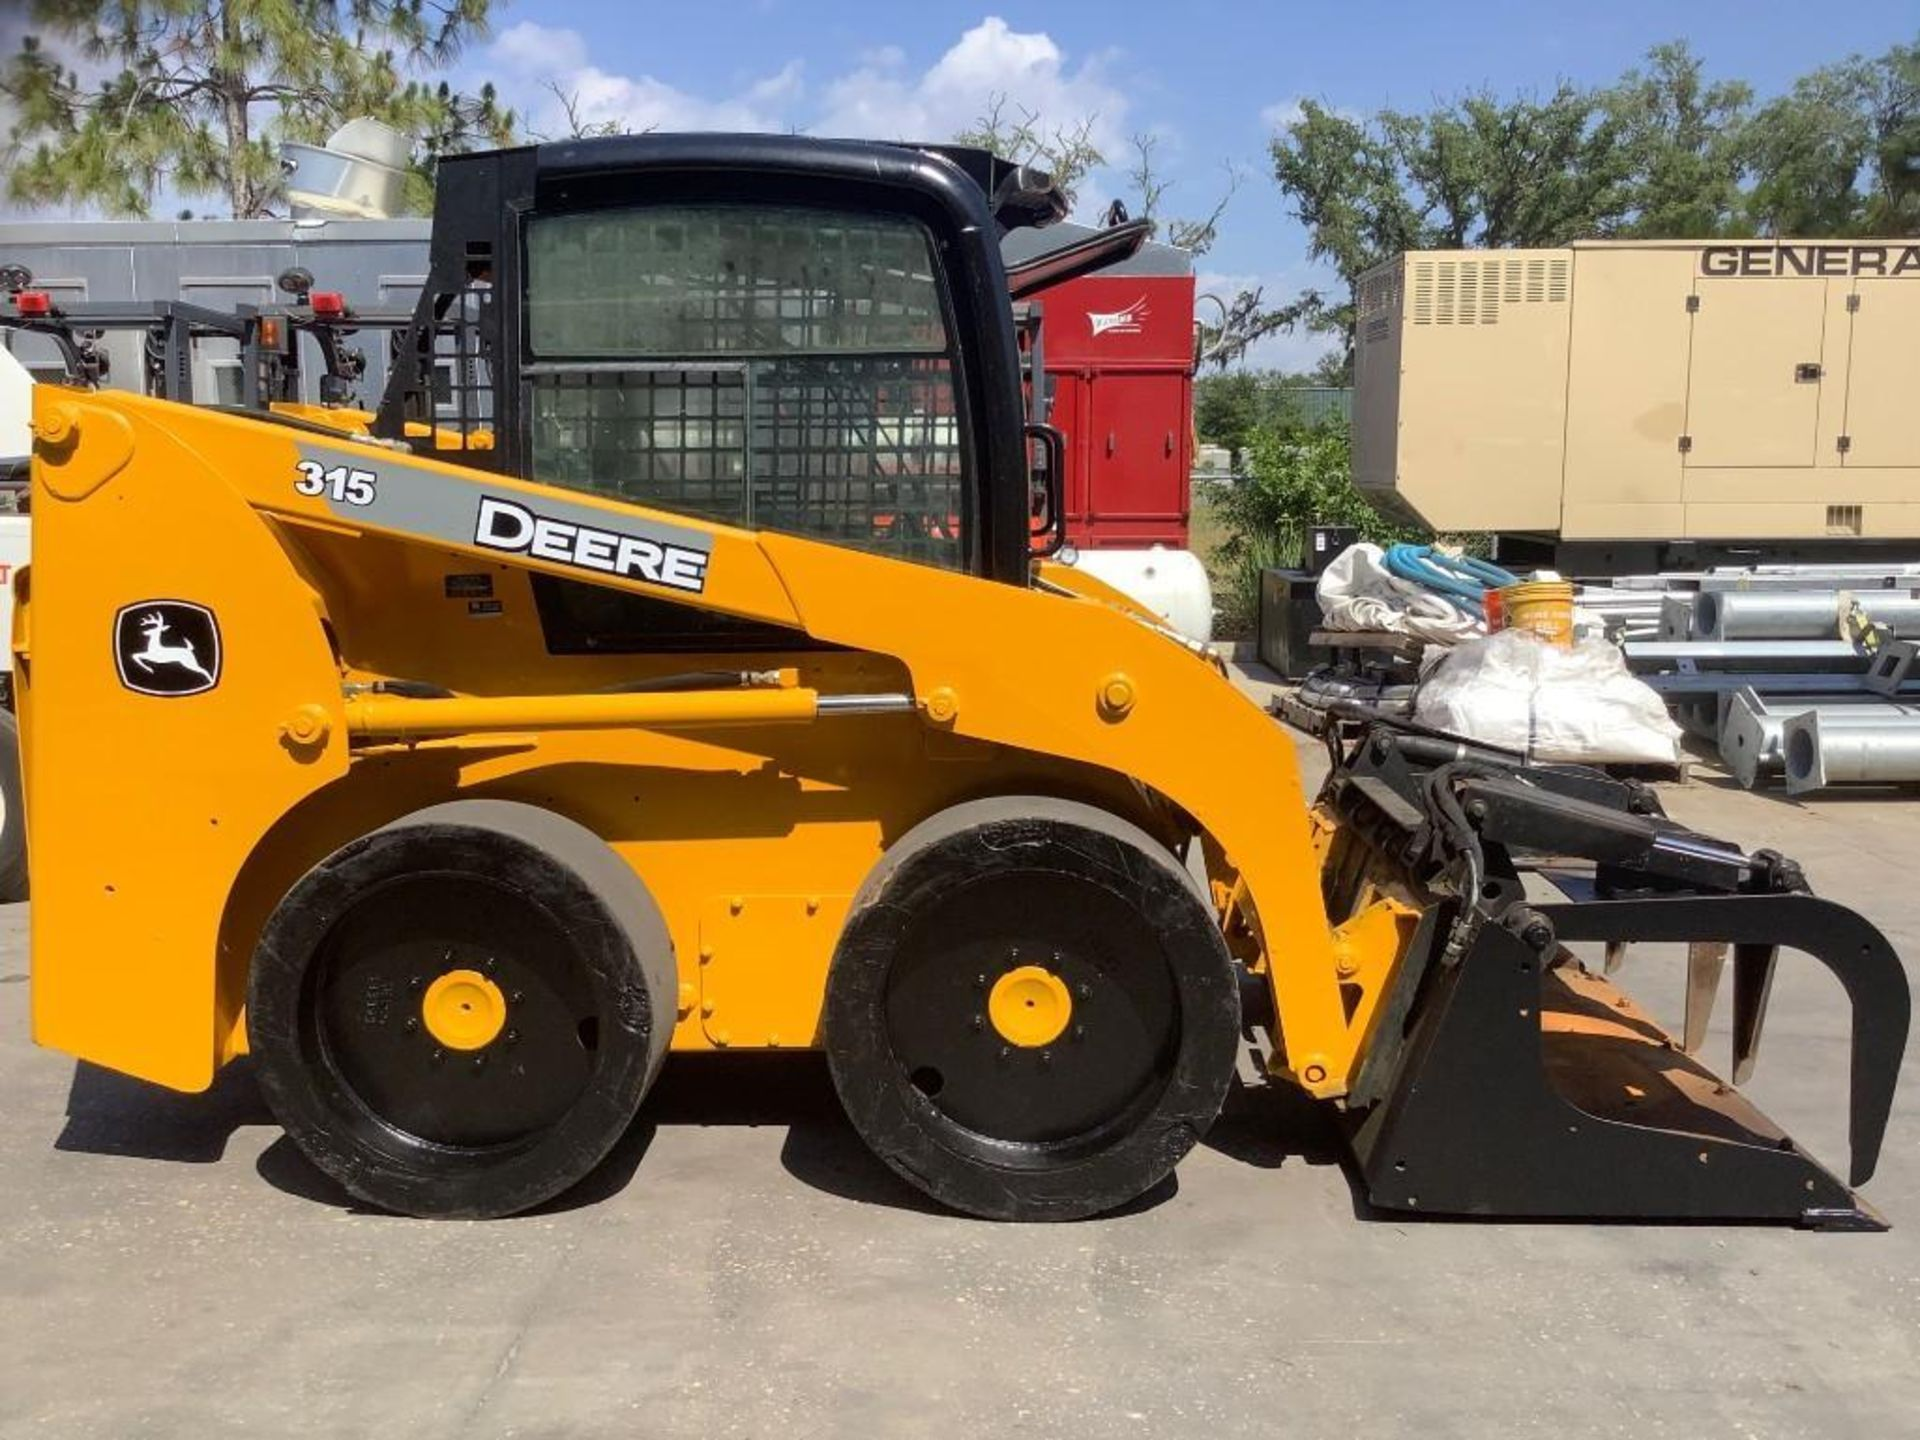 JOHN DEERE SKIDSTEER MODEL 315, DIESEL, GRAPPLE ATTACHMENT, SOLID TIRES, AUX HYDRAULIC, ENCLOSED CAB - Image 3 of 15